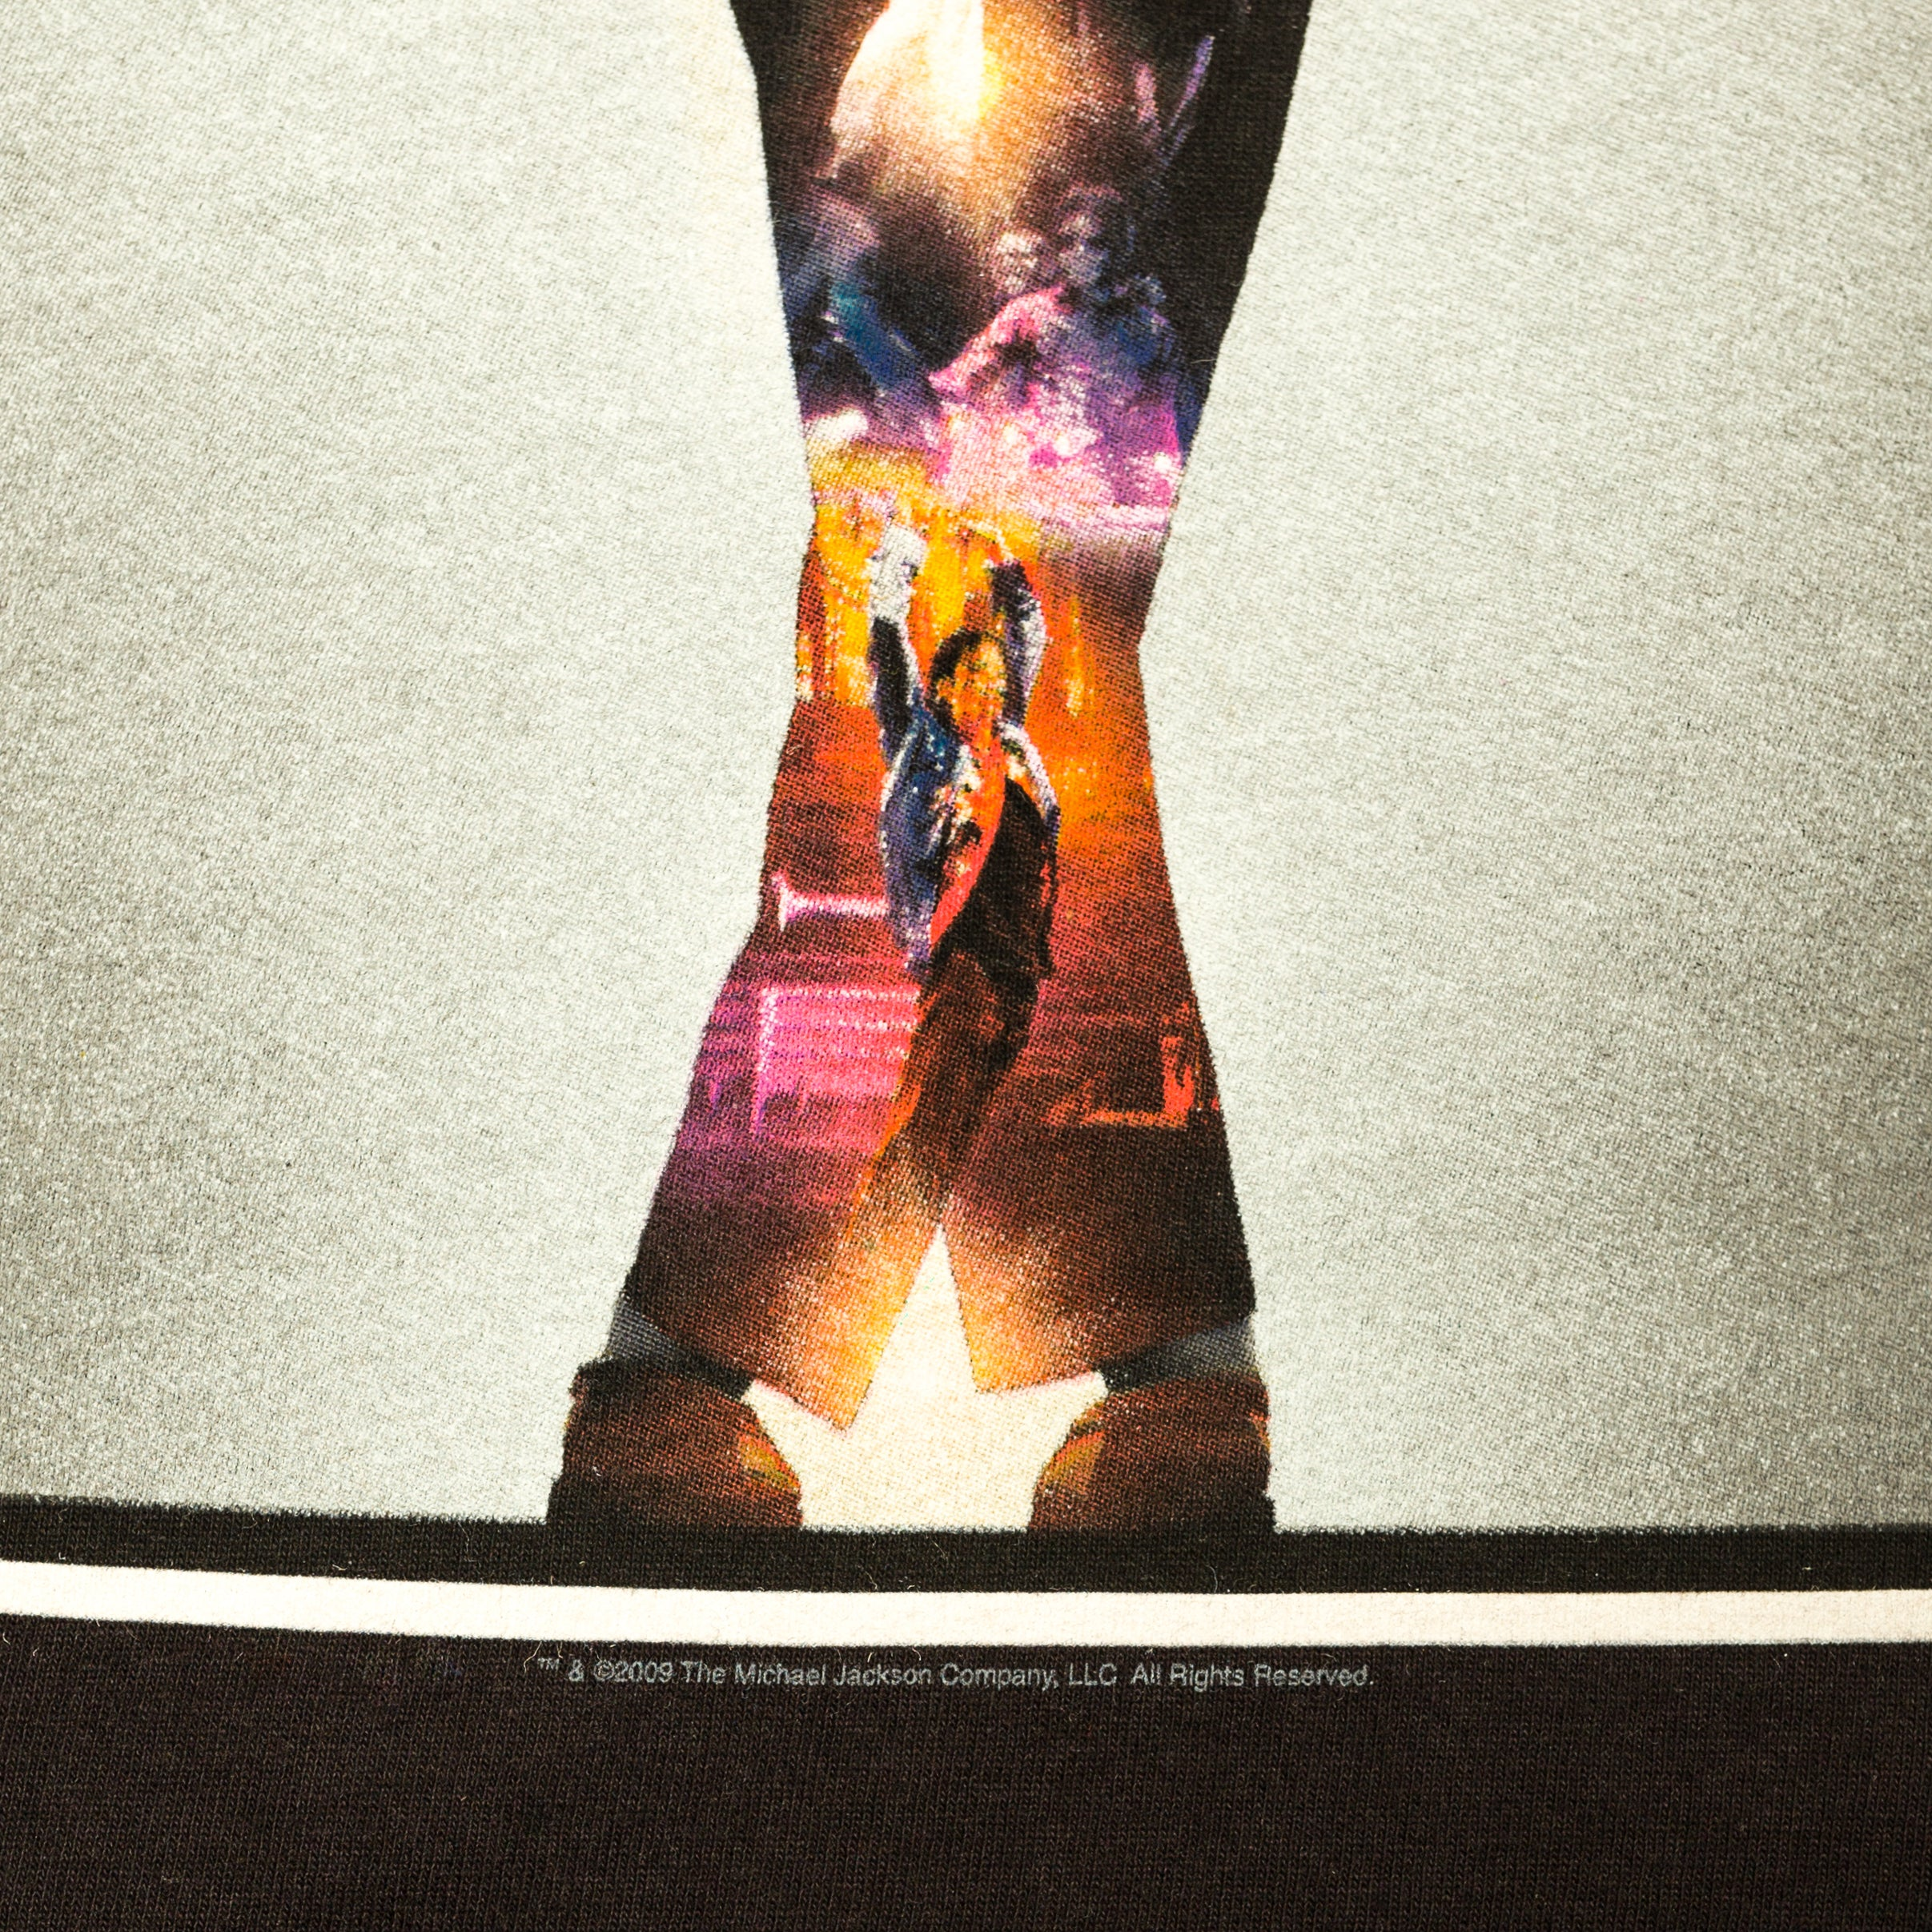 2009 Michael Jackson This Is It Movie Promo T-Shirt